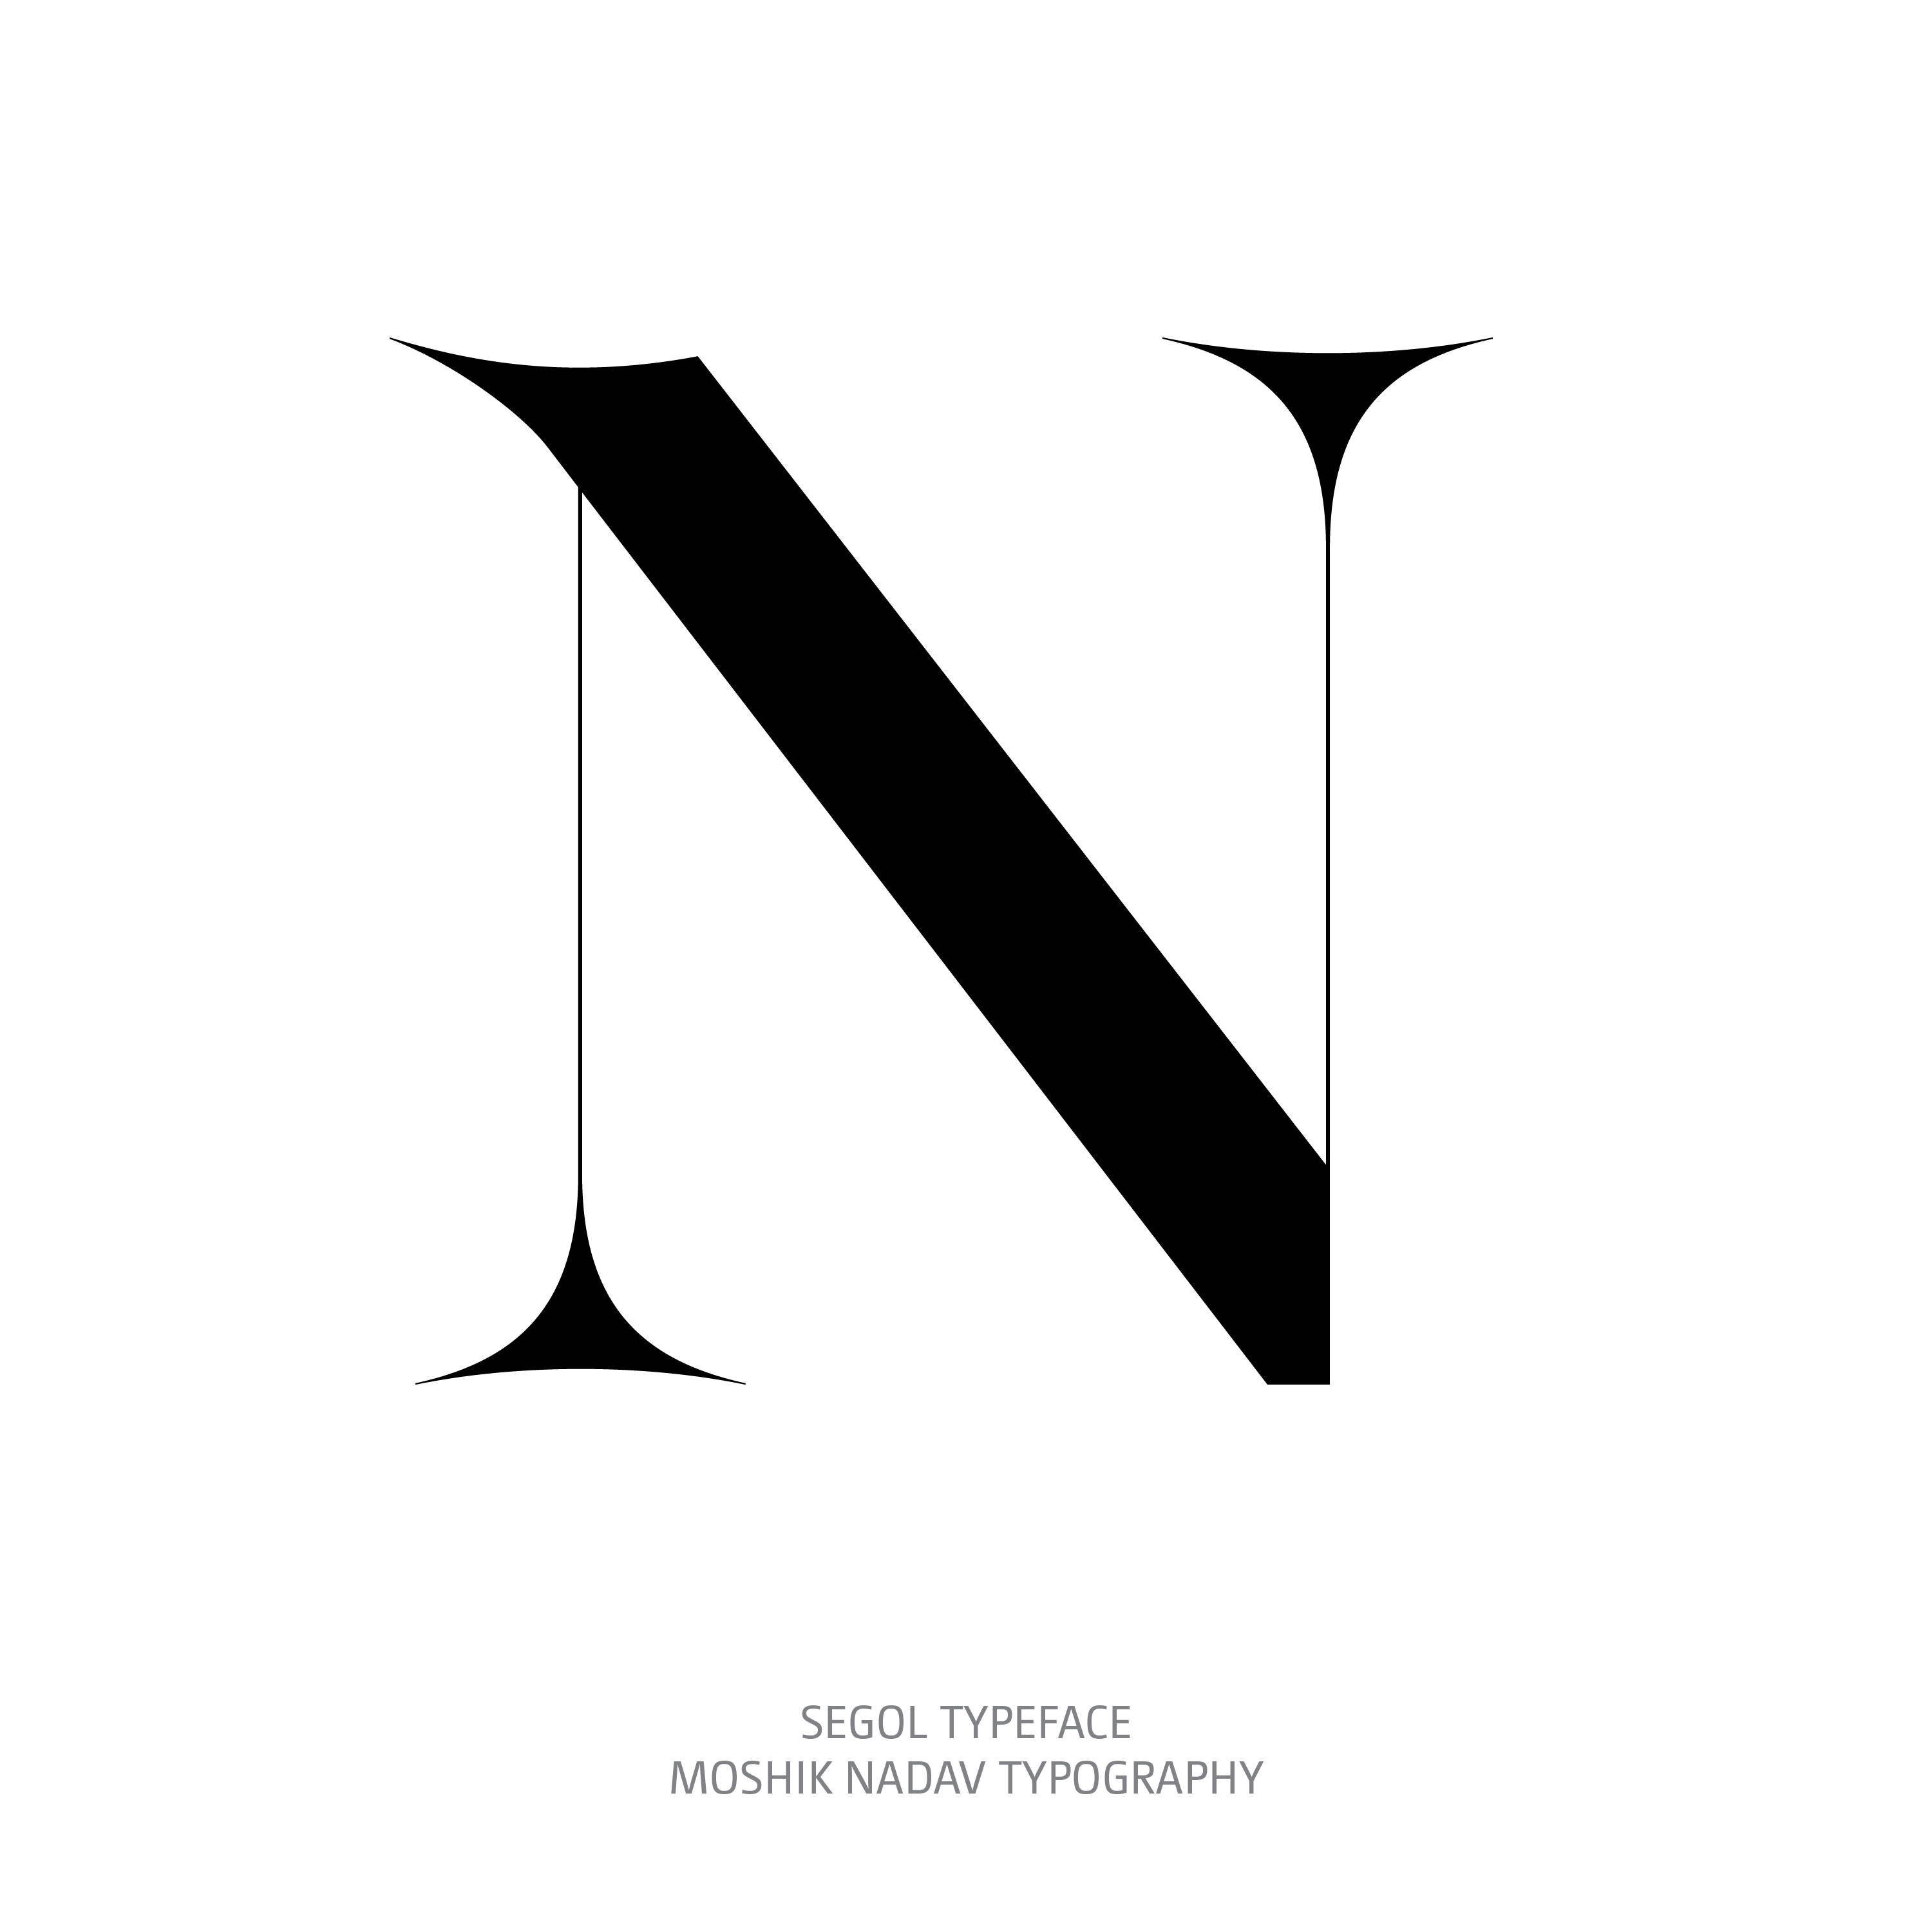 Segol Typeface N The Ultimate Font For Fashion Typography and sexy logos